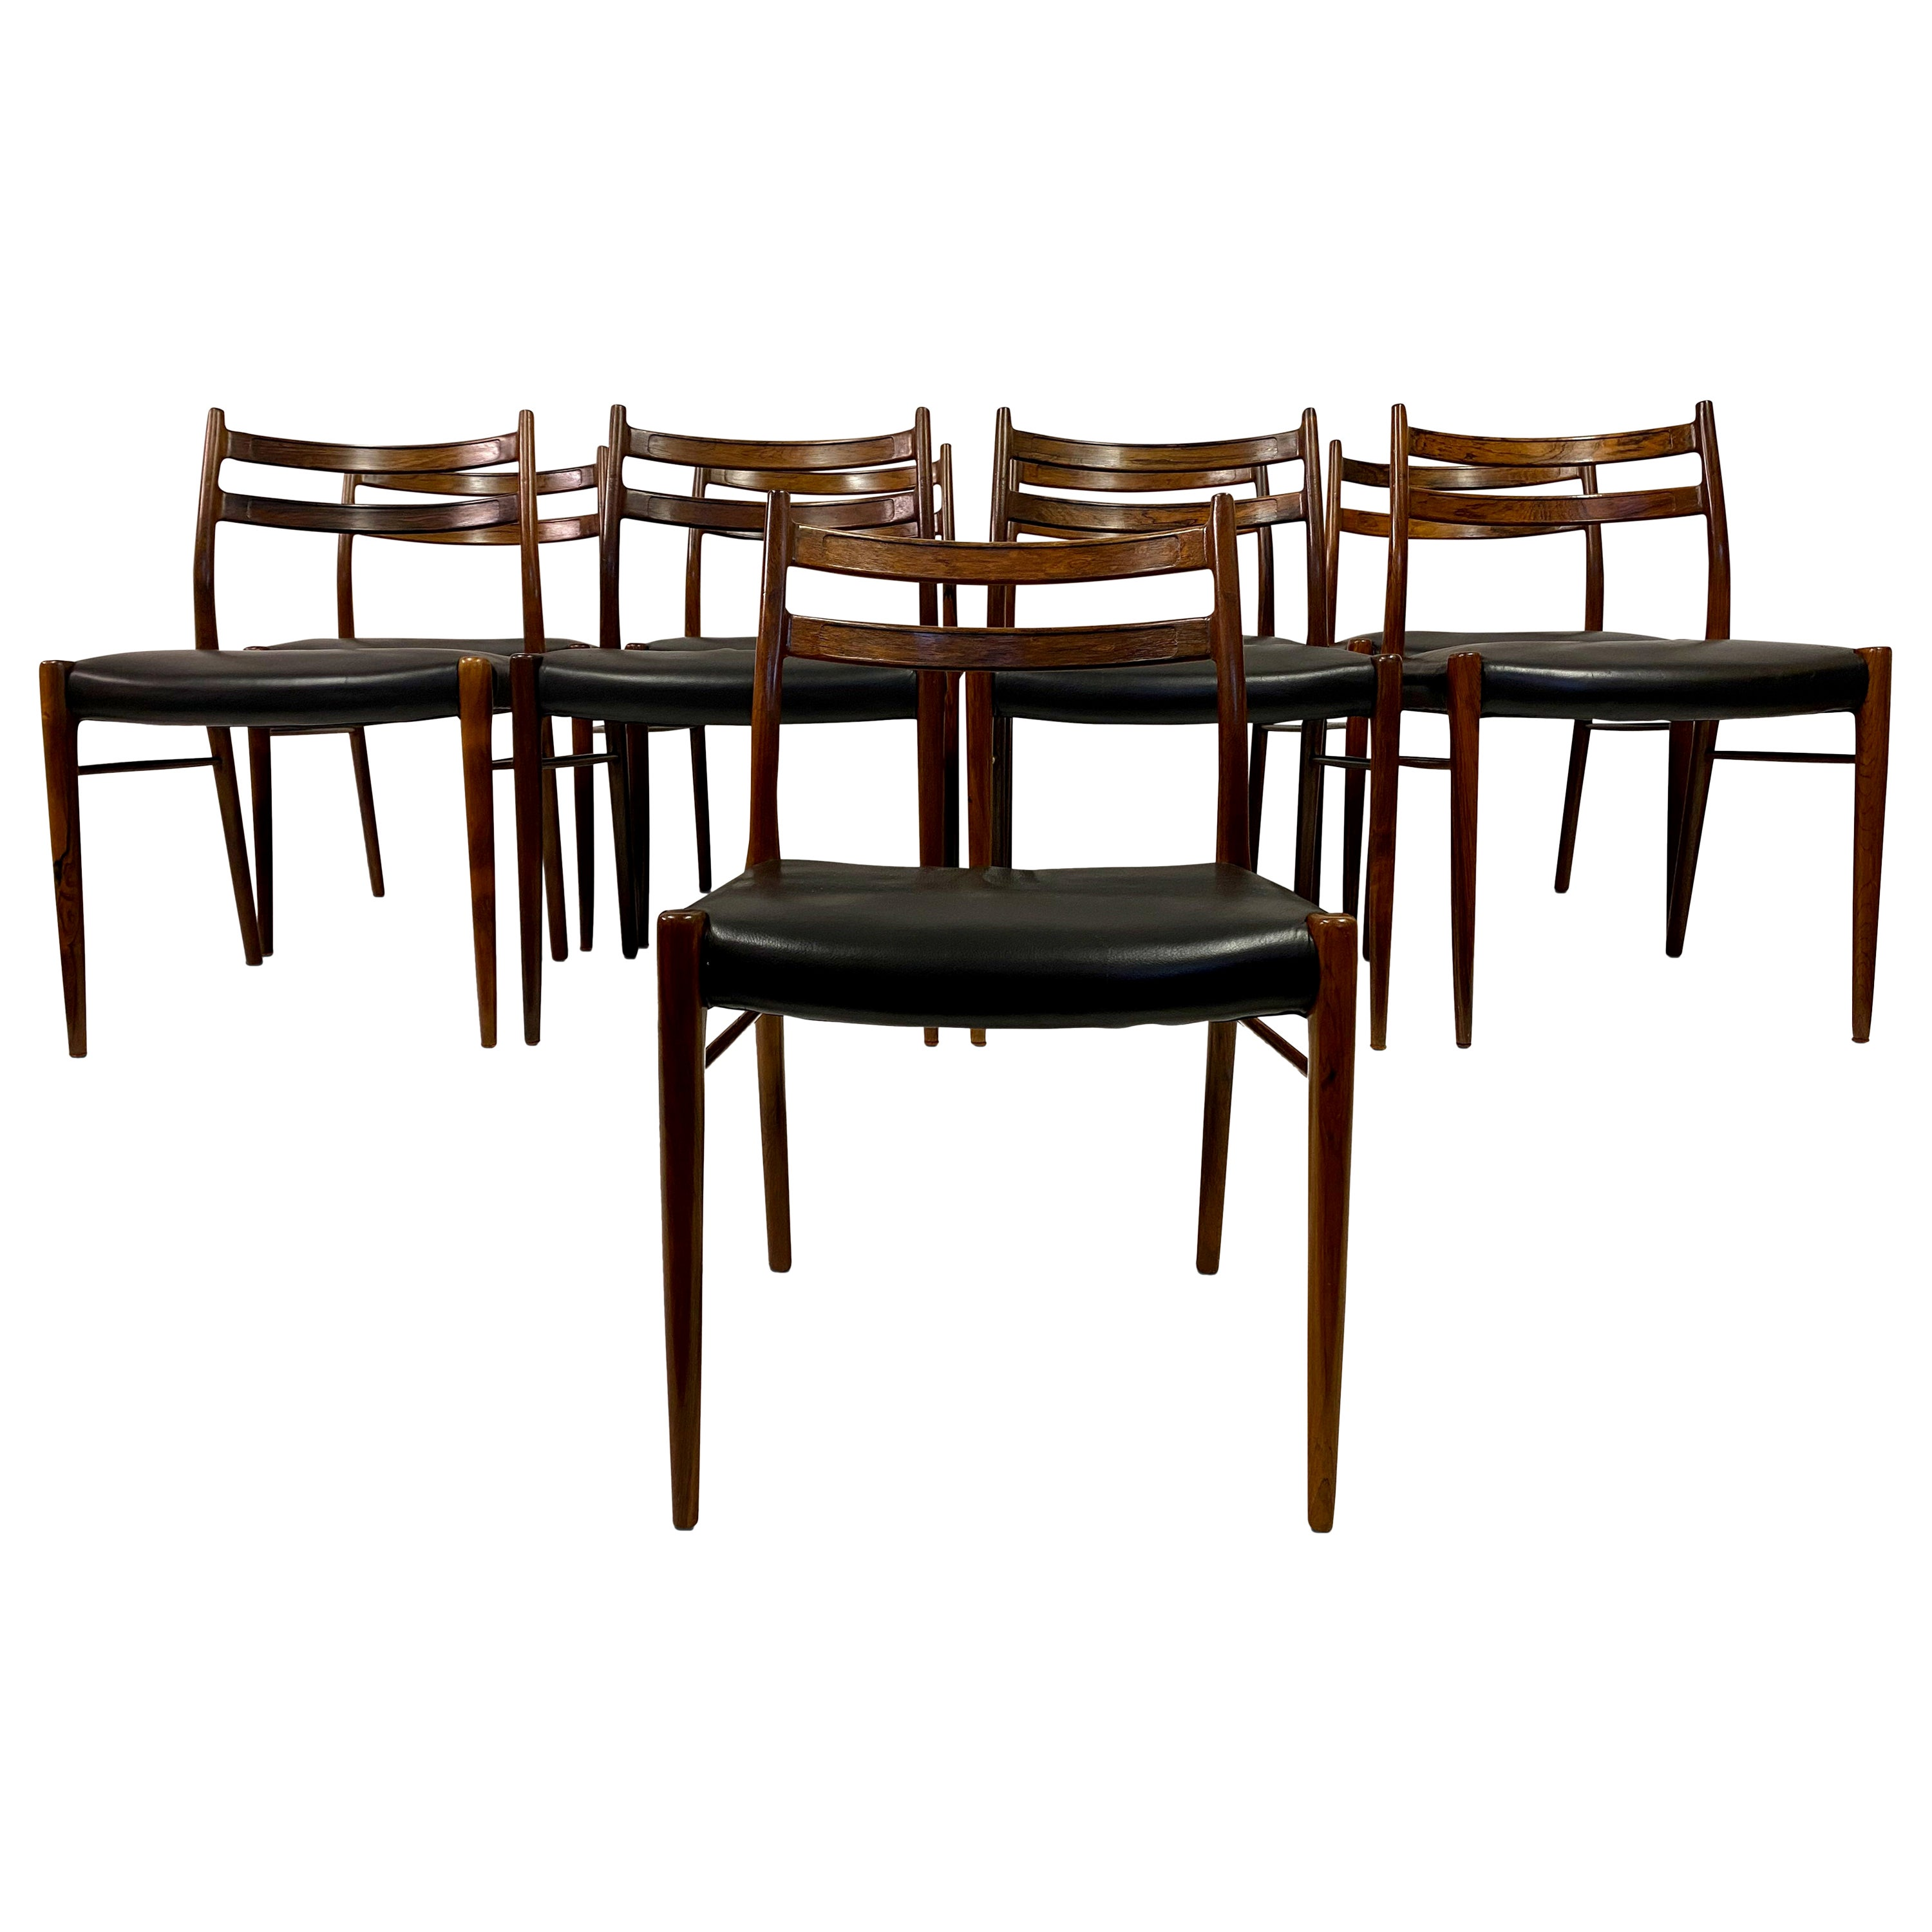 Set of Nine 1960s Danish Rosewood Dining Chairs by Glyngøre Stolefabrik